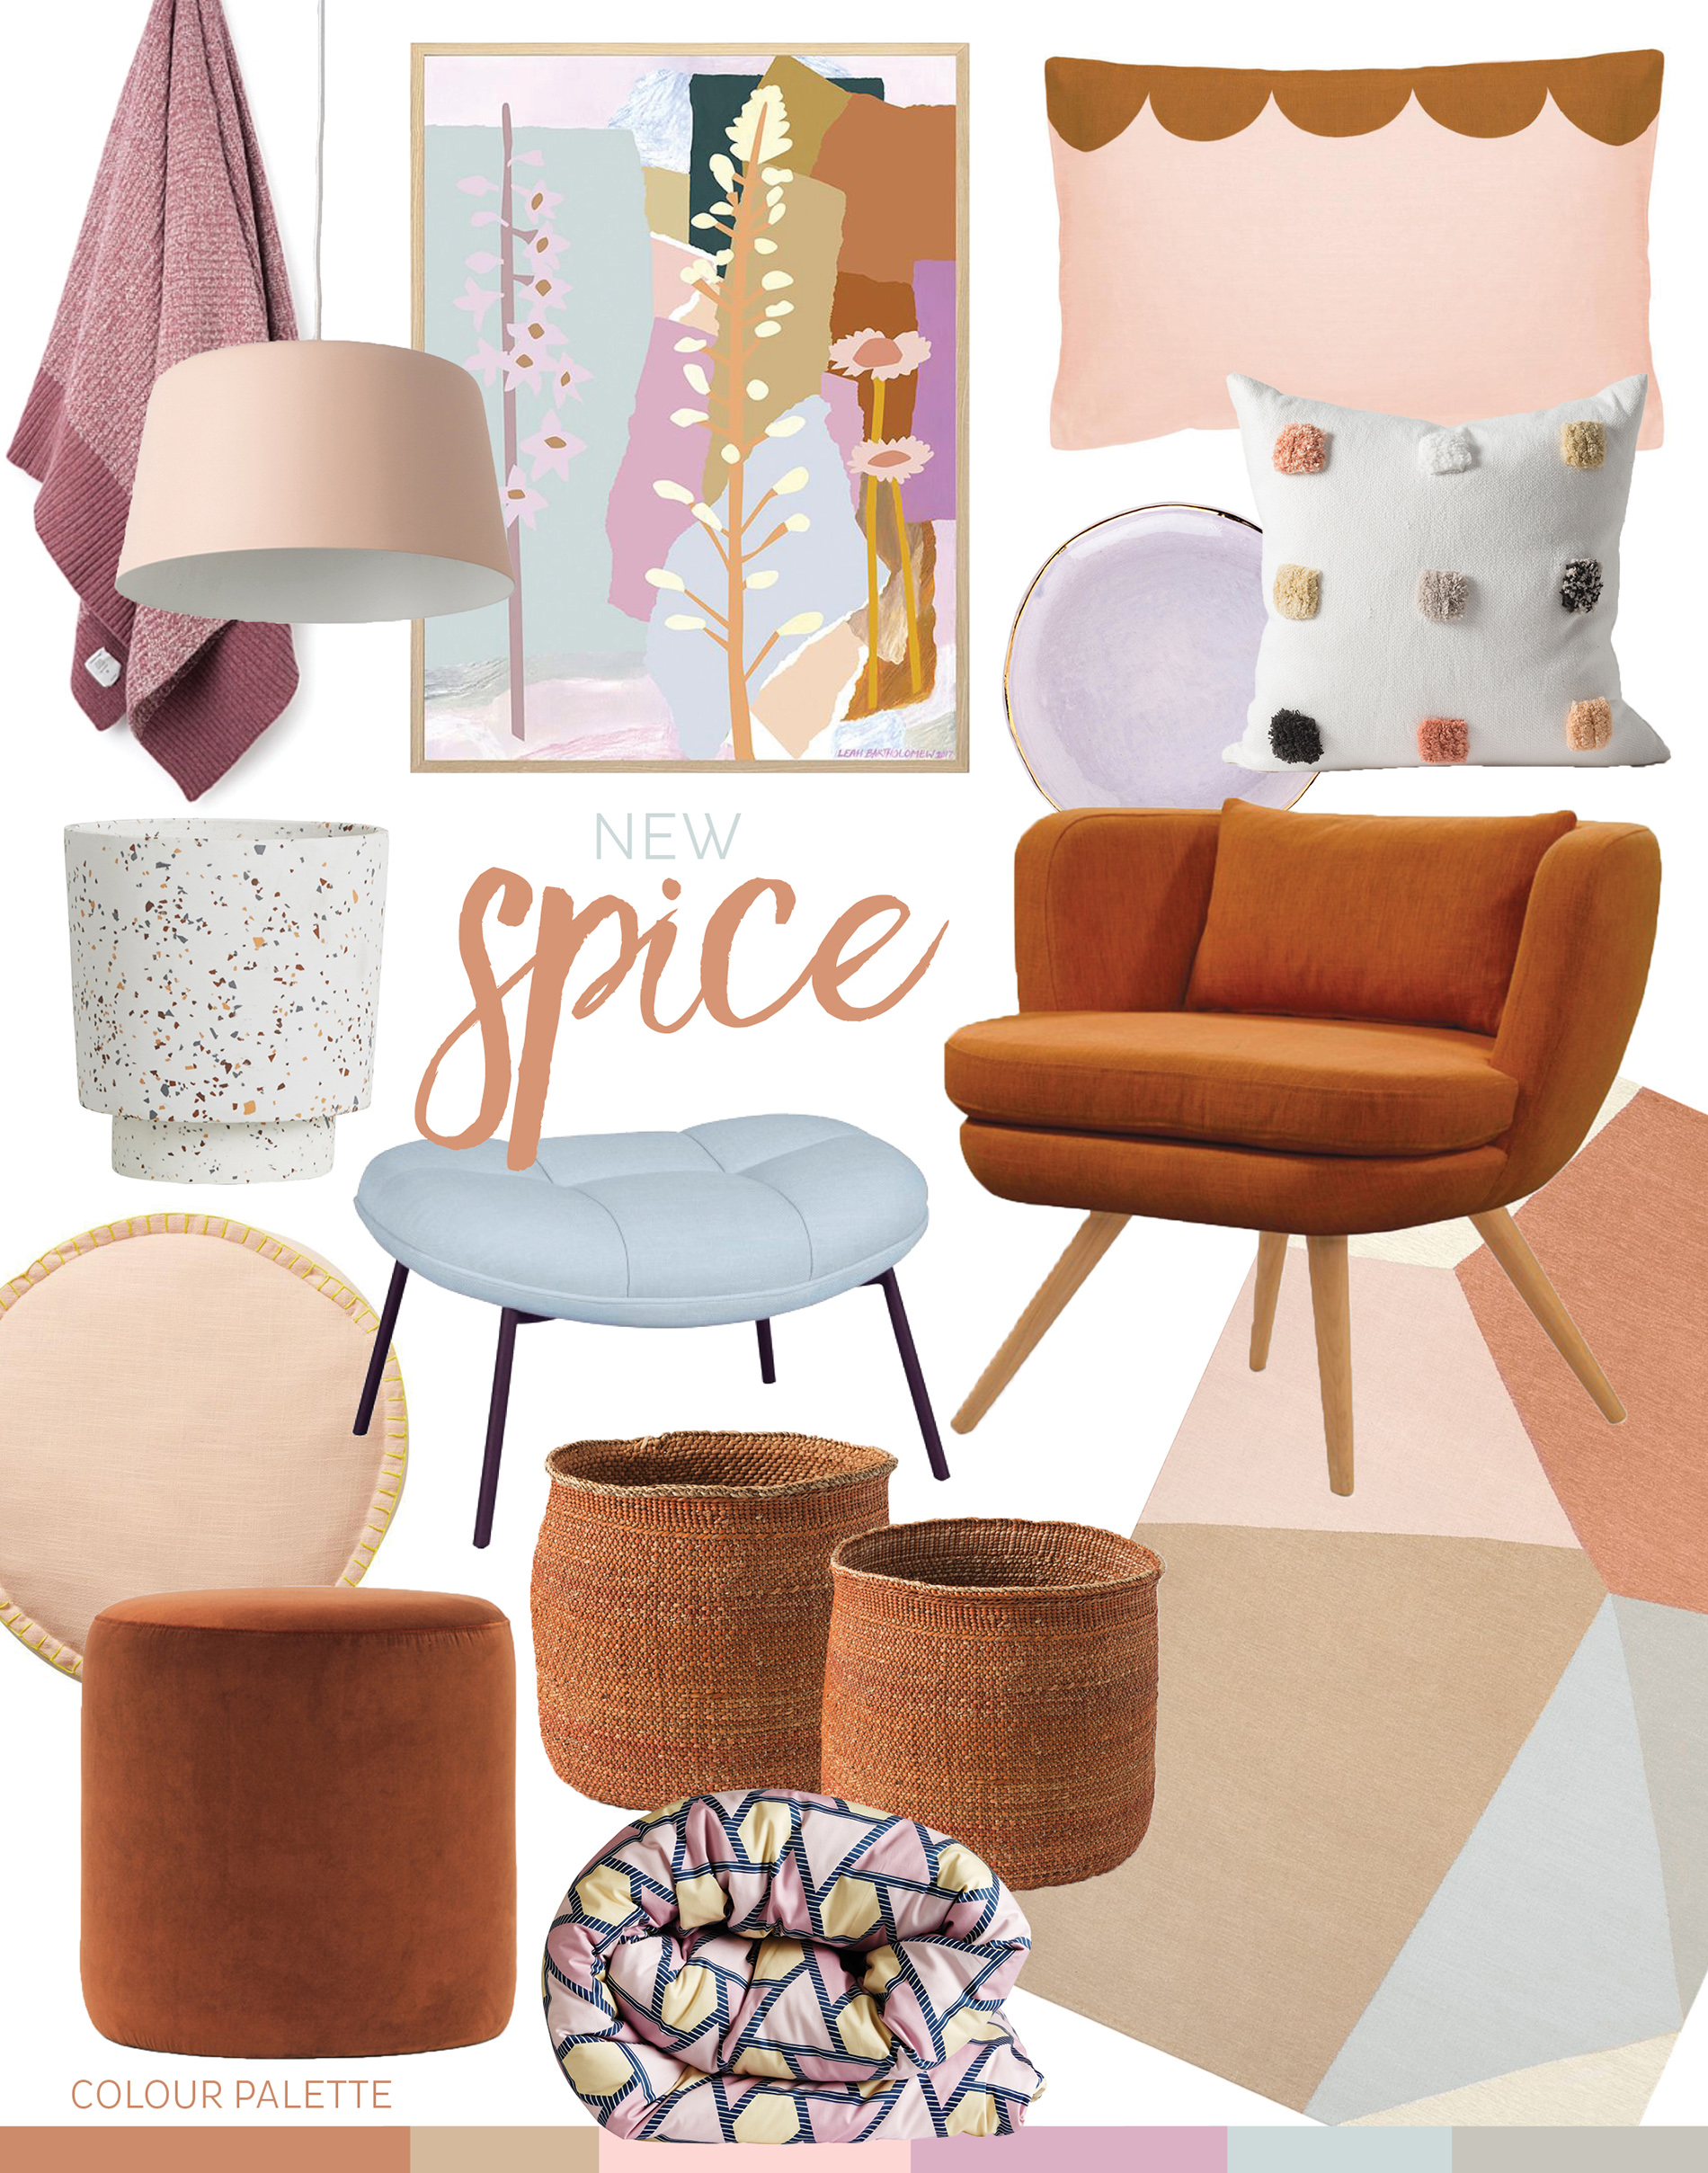 adore_home_blog_new_spice_rust_duck_egg_blue_soft_pink_lilac_homewares_furniture_colour.jpg